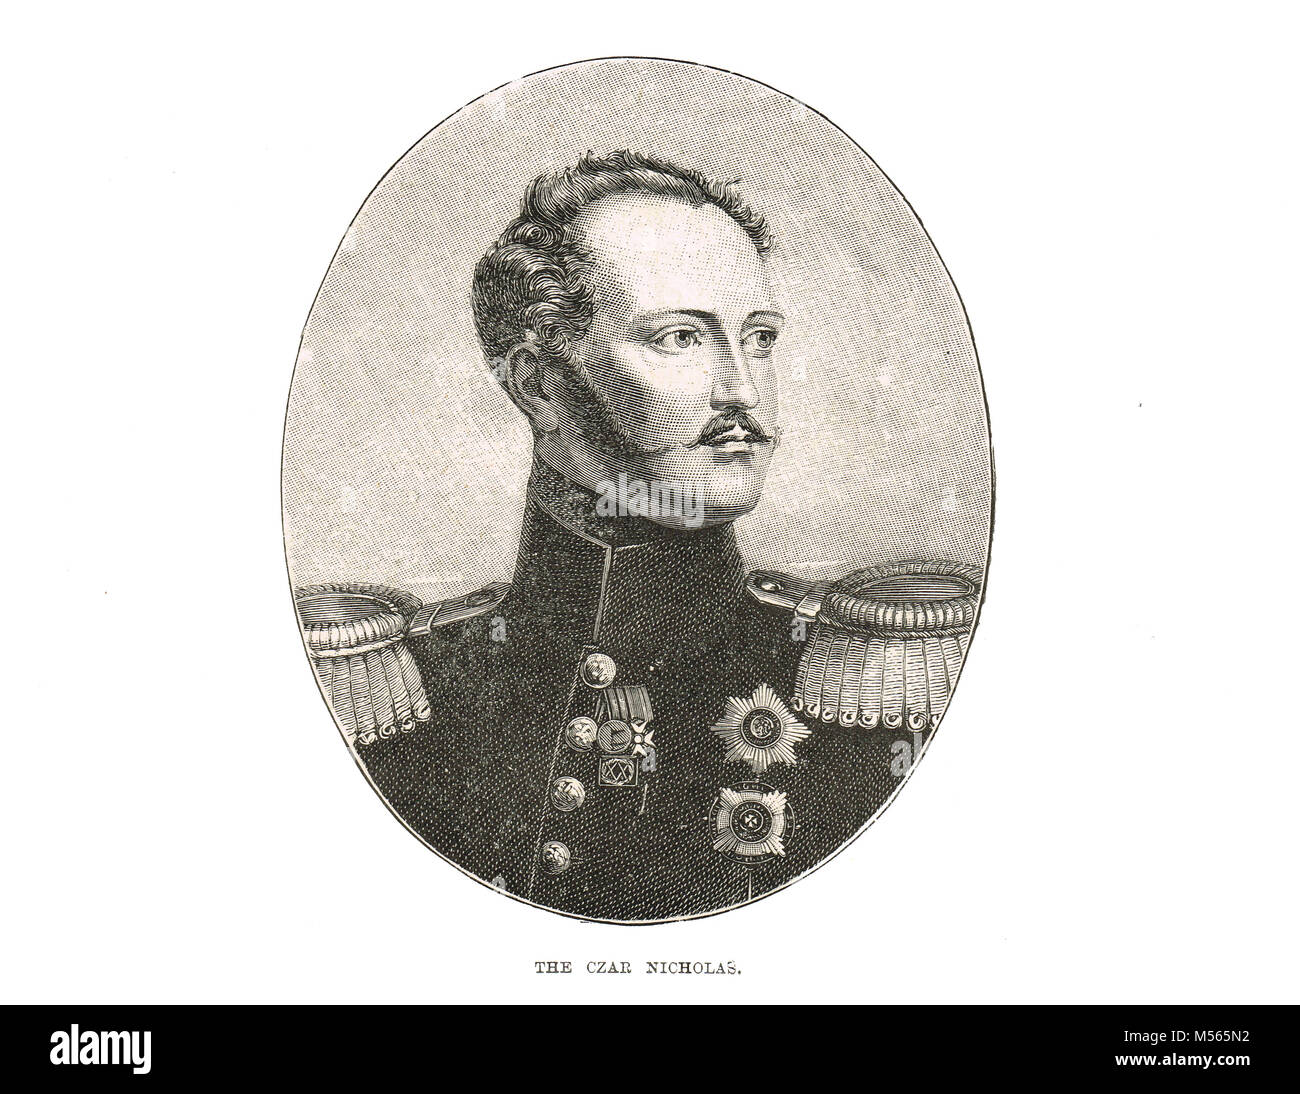 Czar Nicholas I of Russia, 1796-1855,  Emperor of Russia, reigned 1825-1855, King of Poland and Grand Duke of Finland - Stock Image